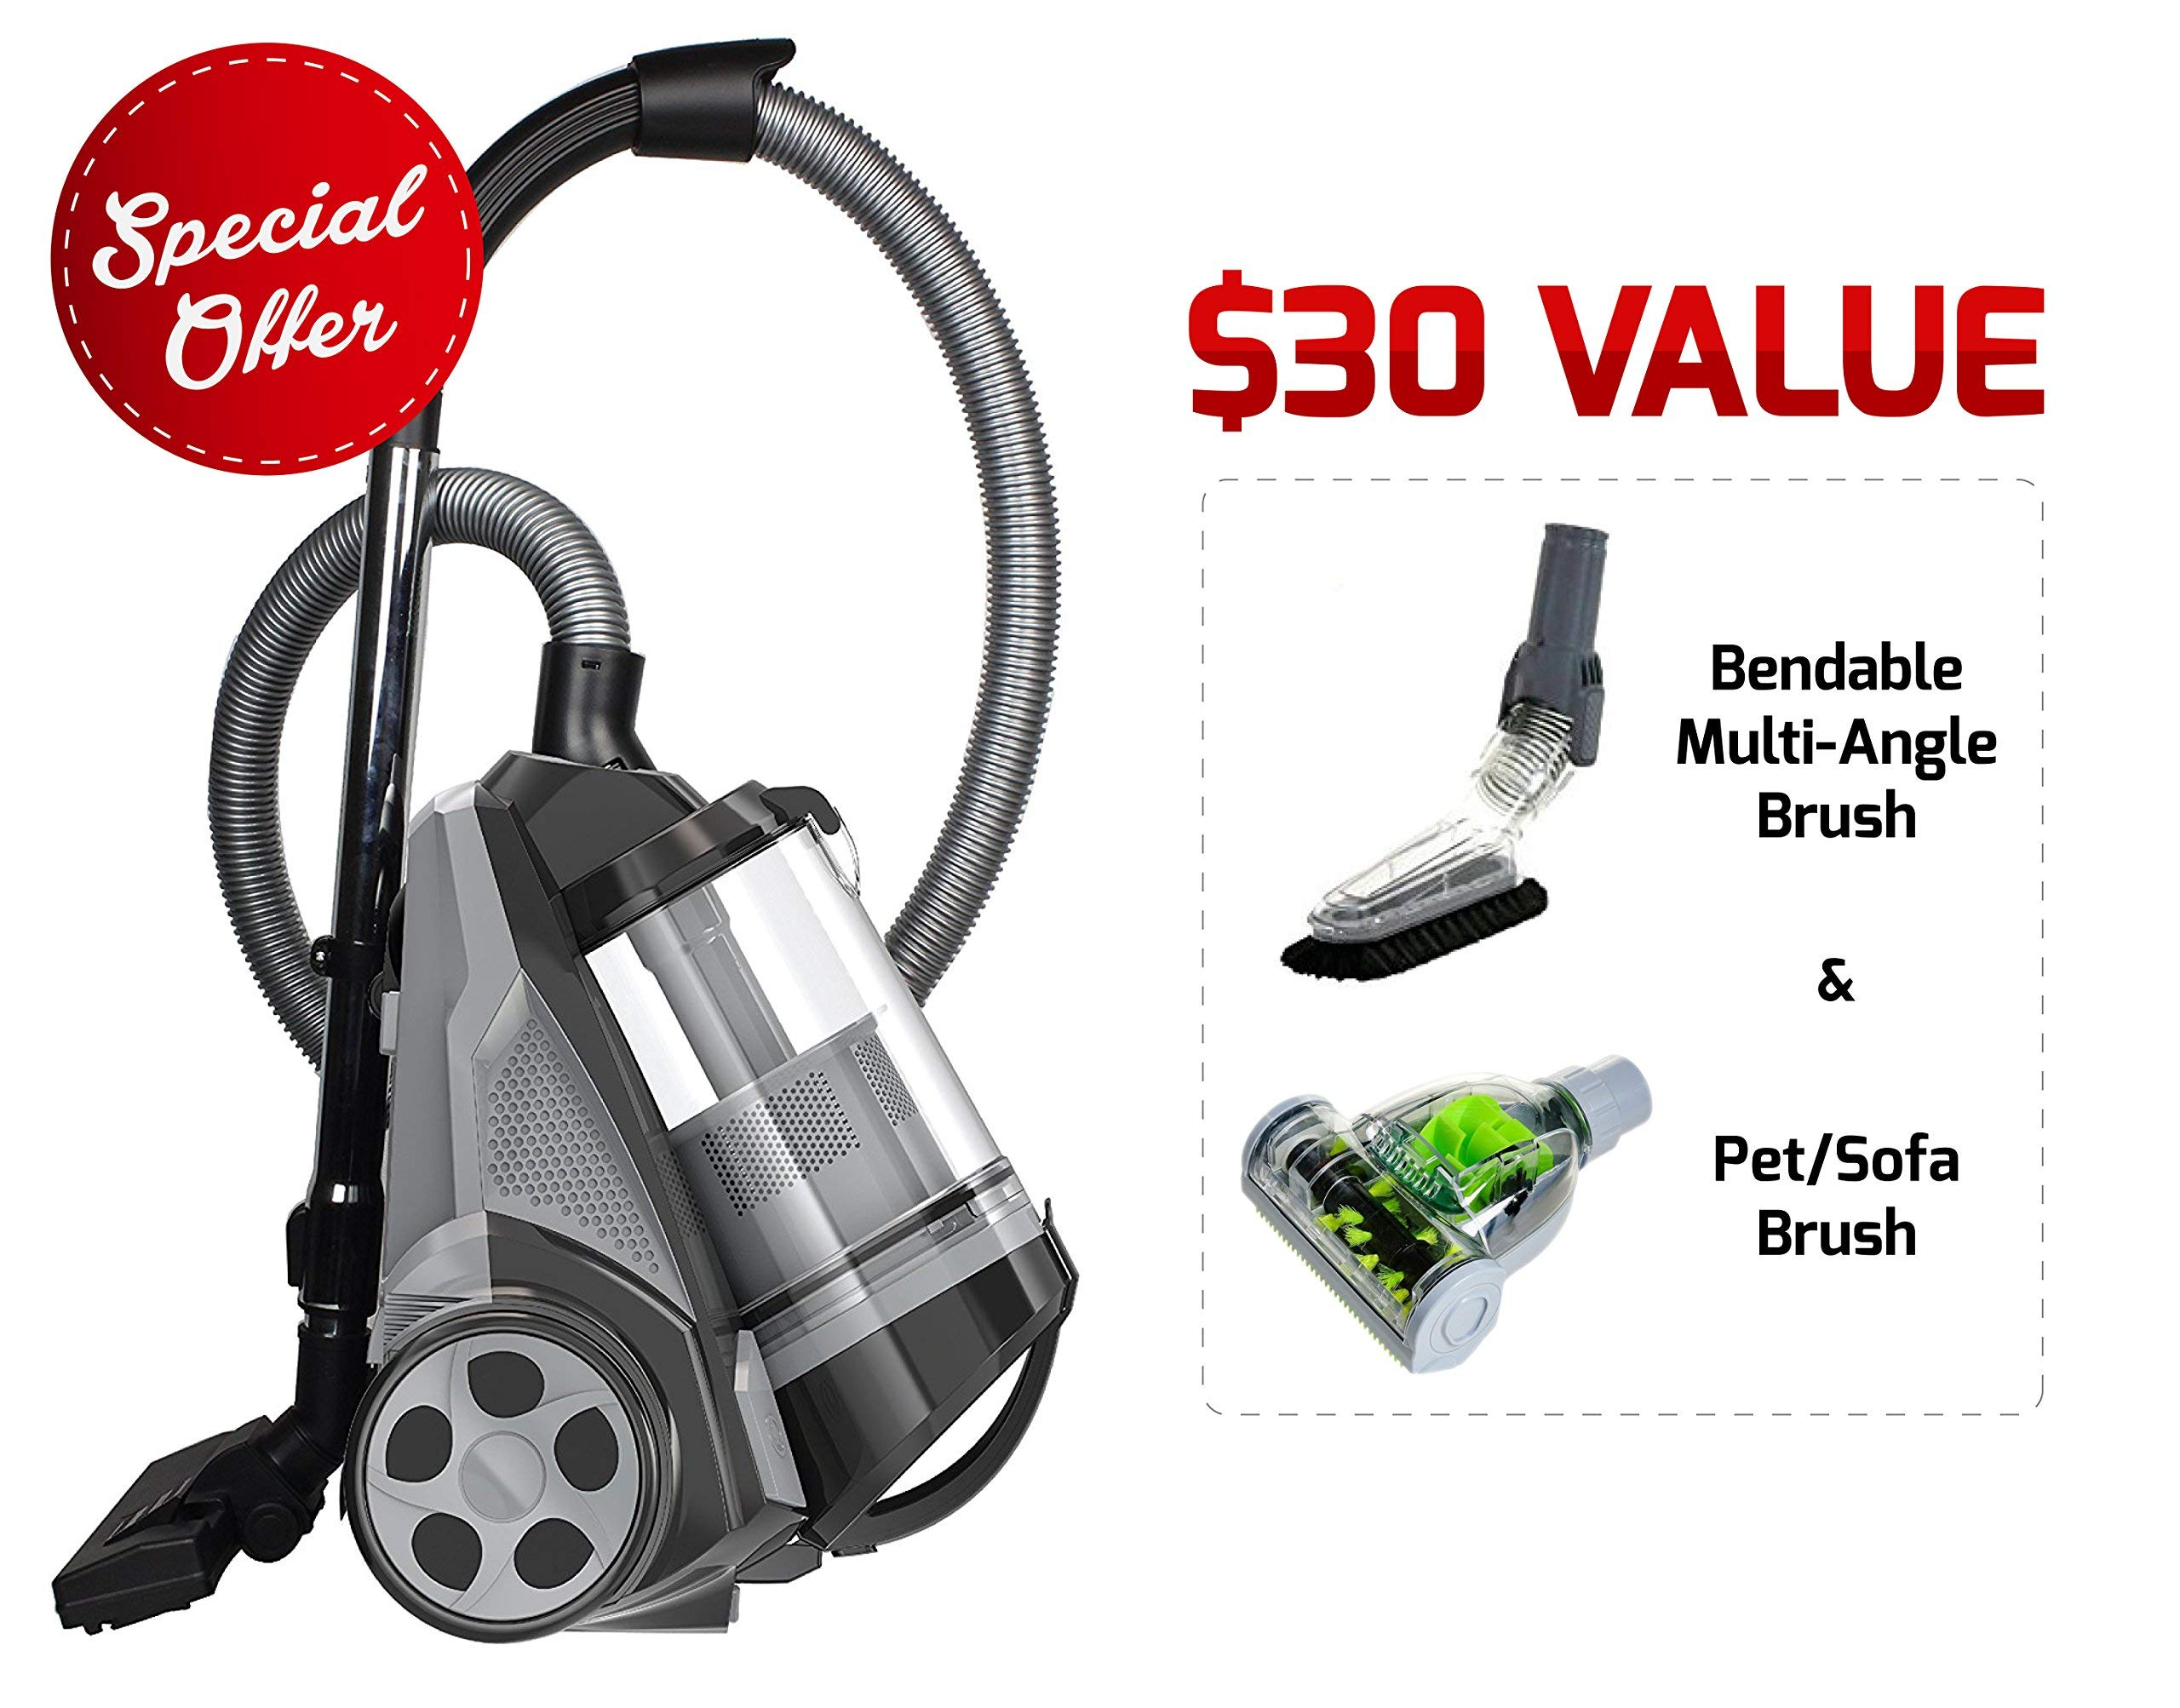 Ovente ST2620B Bagless Canister Cyclonic Vacuum - HEPA Filter - Includes Pet/Sofa, Bendable Multi-Angle, Crevice Nozzle/Bristle Brush, Retractable Cord - Featherlite, Black (Renewed) by Ovente